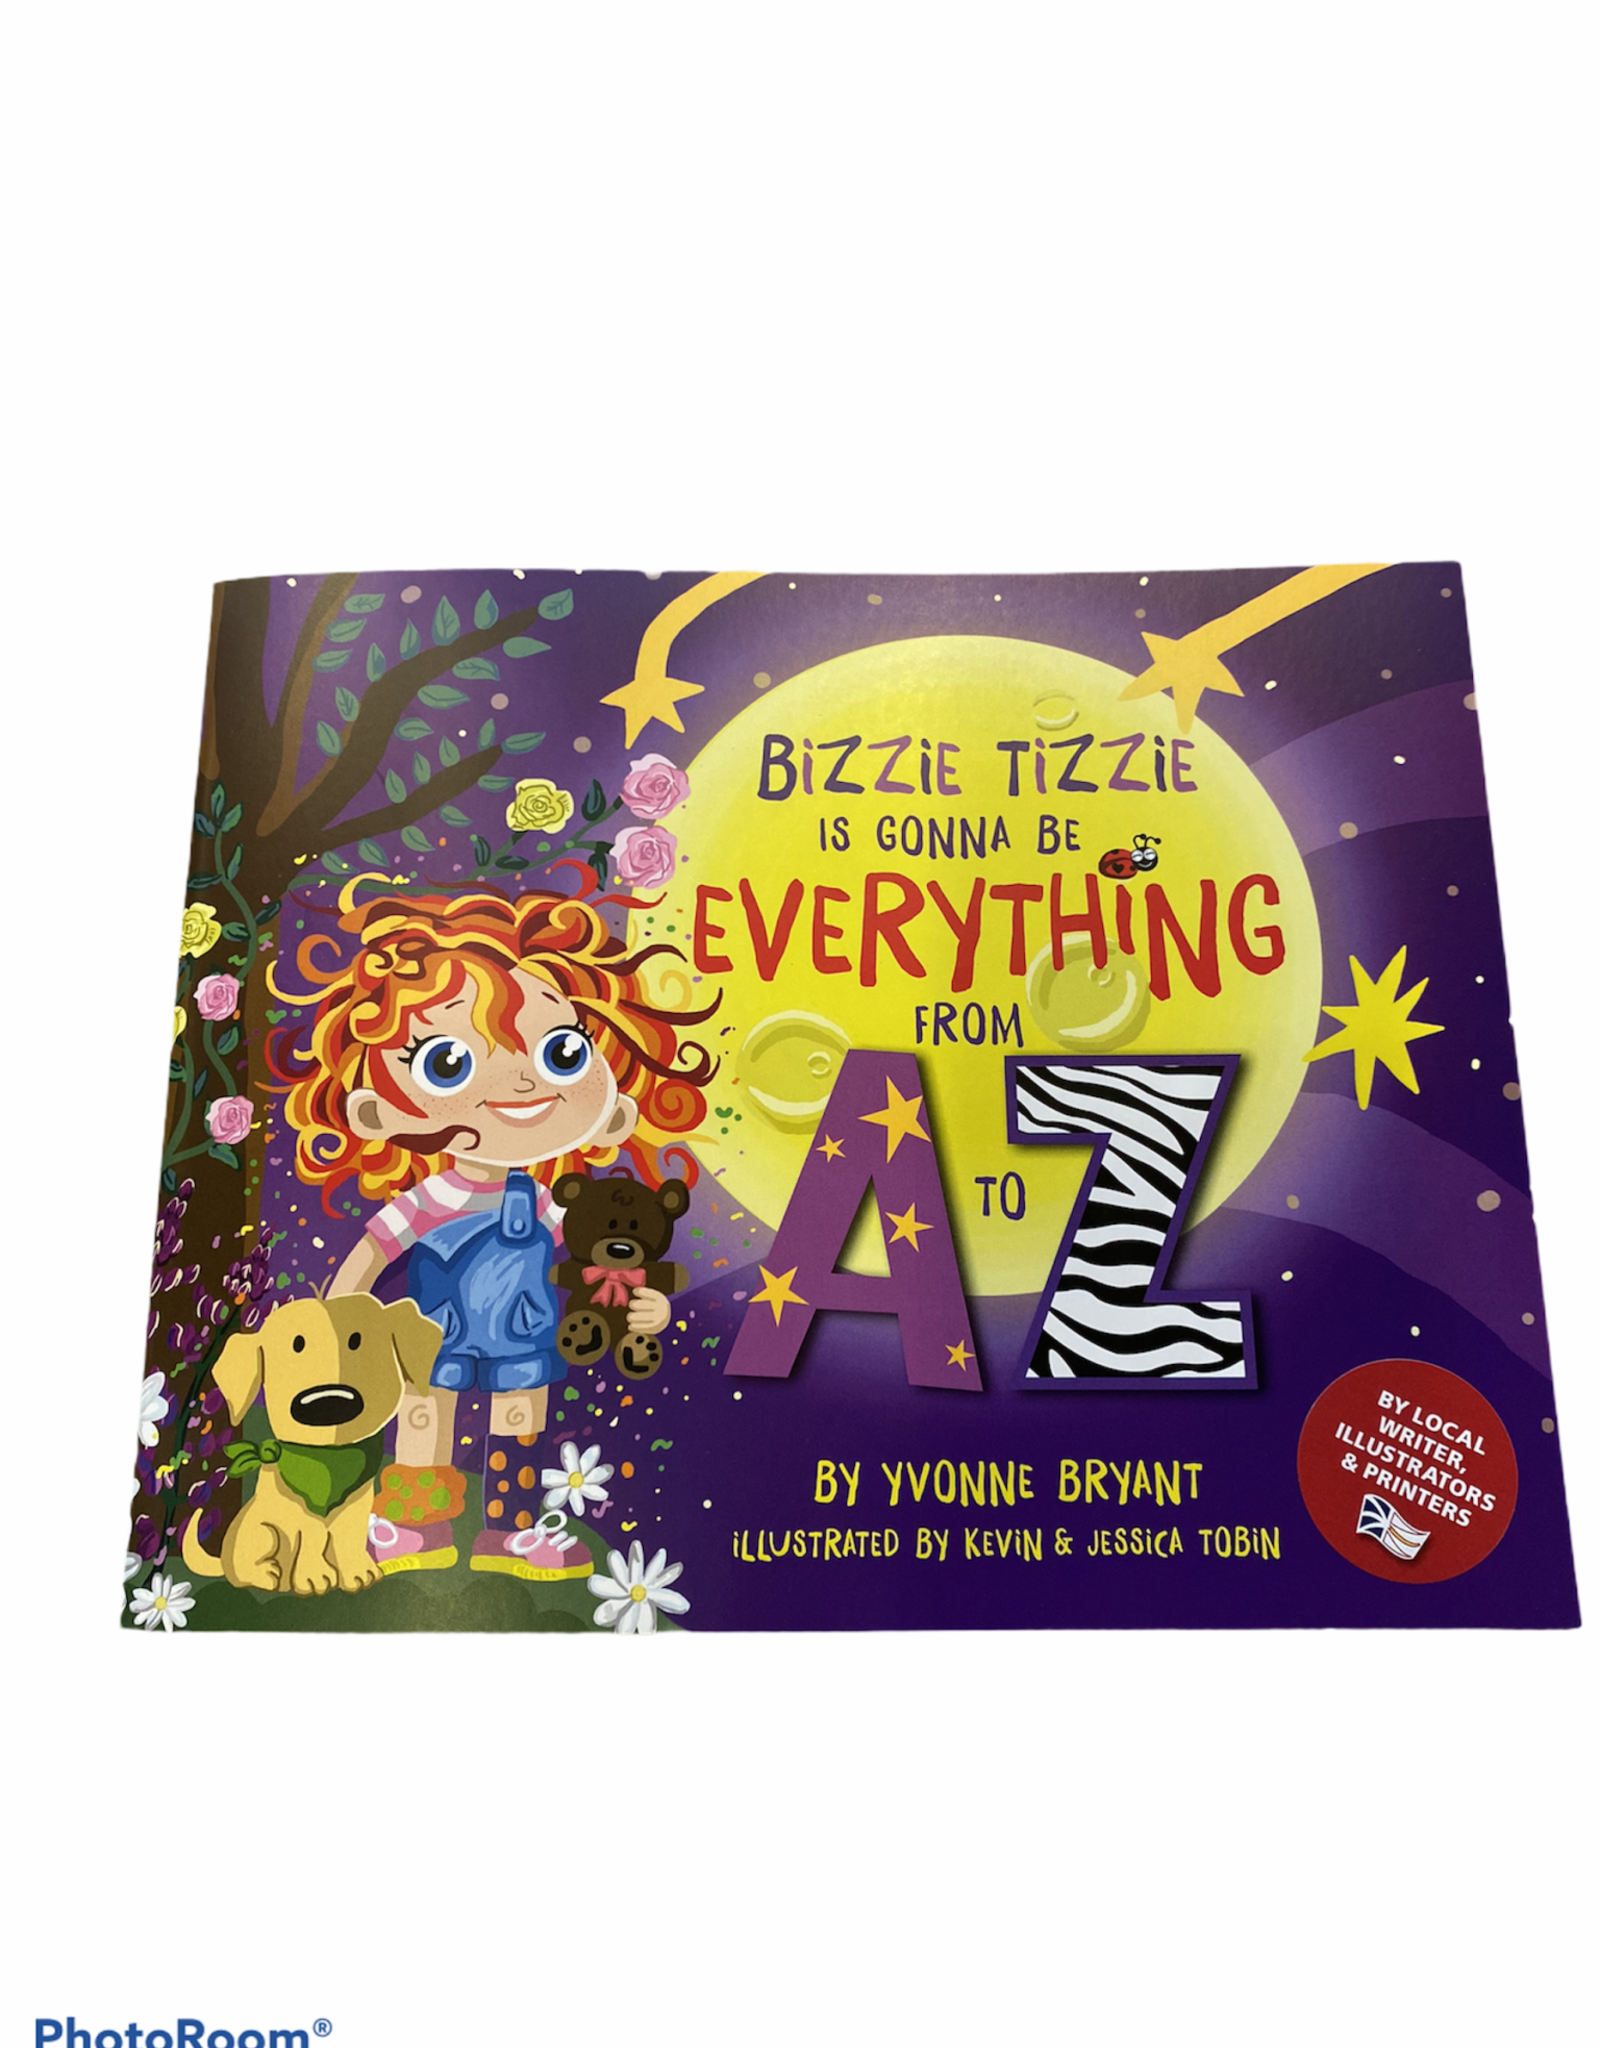 Bizzie Tizzie is going to be everything From A to Z